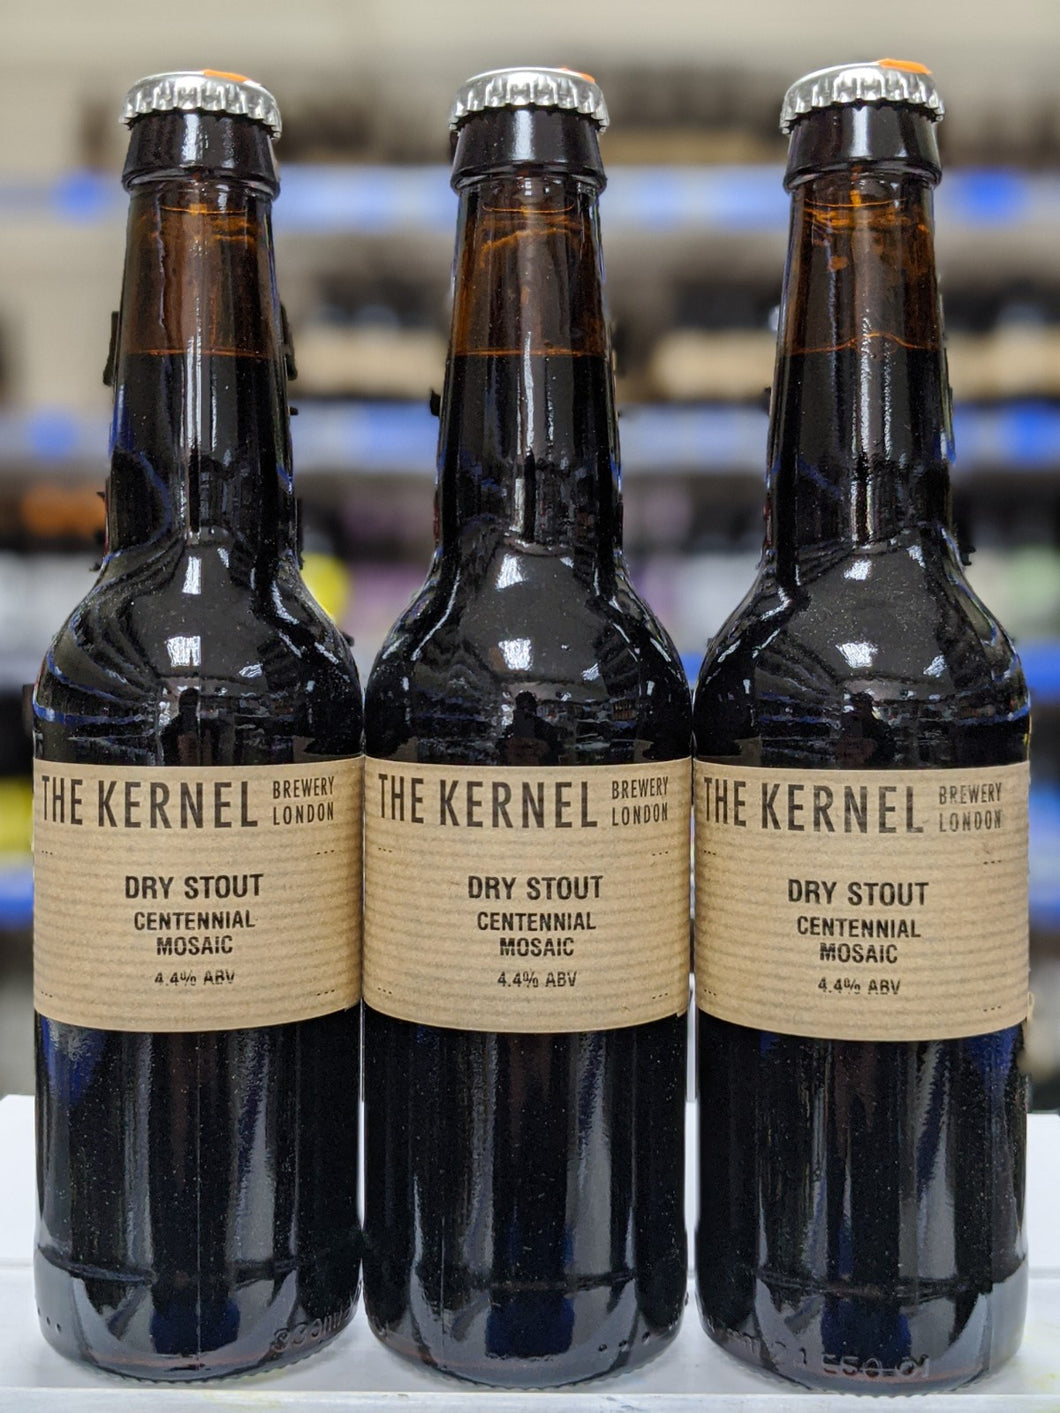 Dry Stout Centennial Mosaic - The Kernel Brewery - Dry Stout, 4.4%, 330ml Bottle